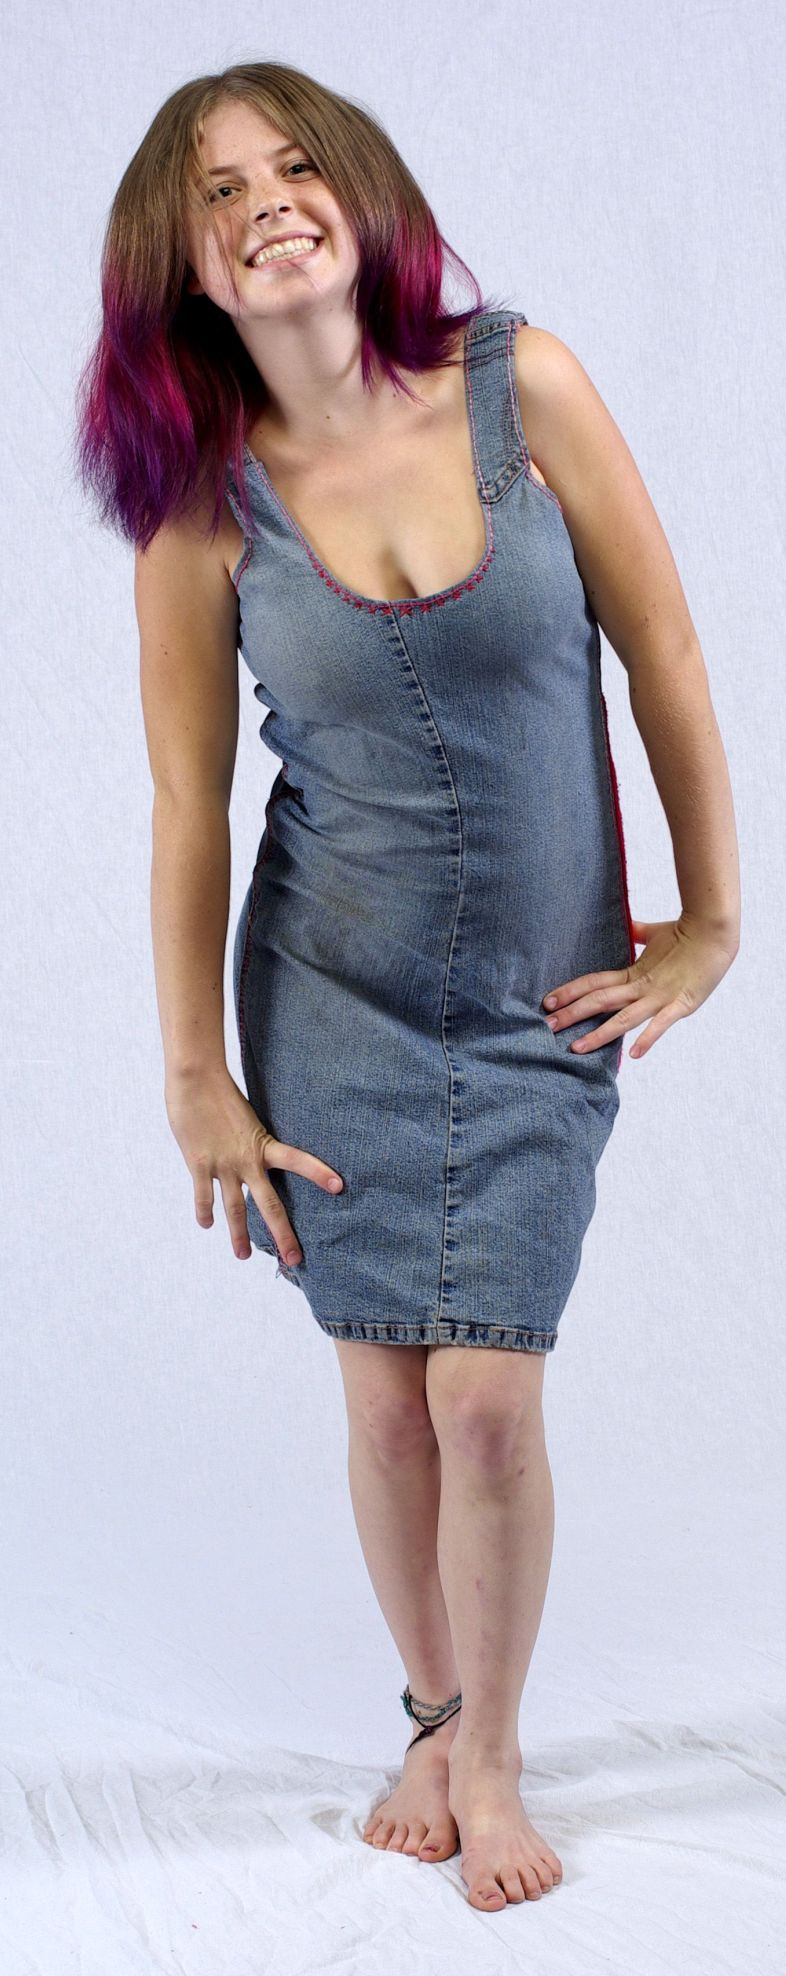 Nov 07, 2008 Jon Souer  Dress I Made From A Pair Of Jeans